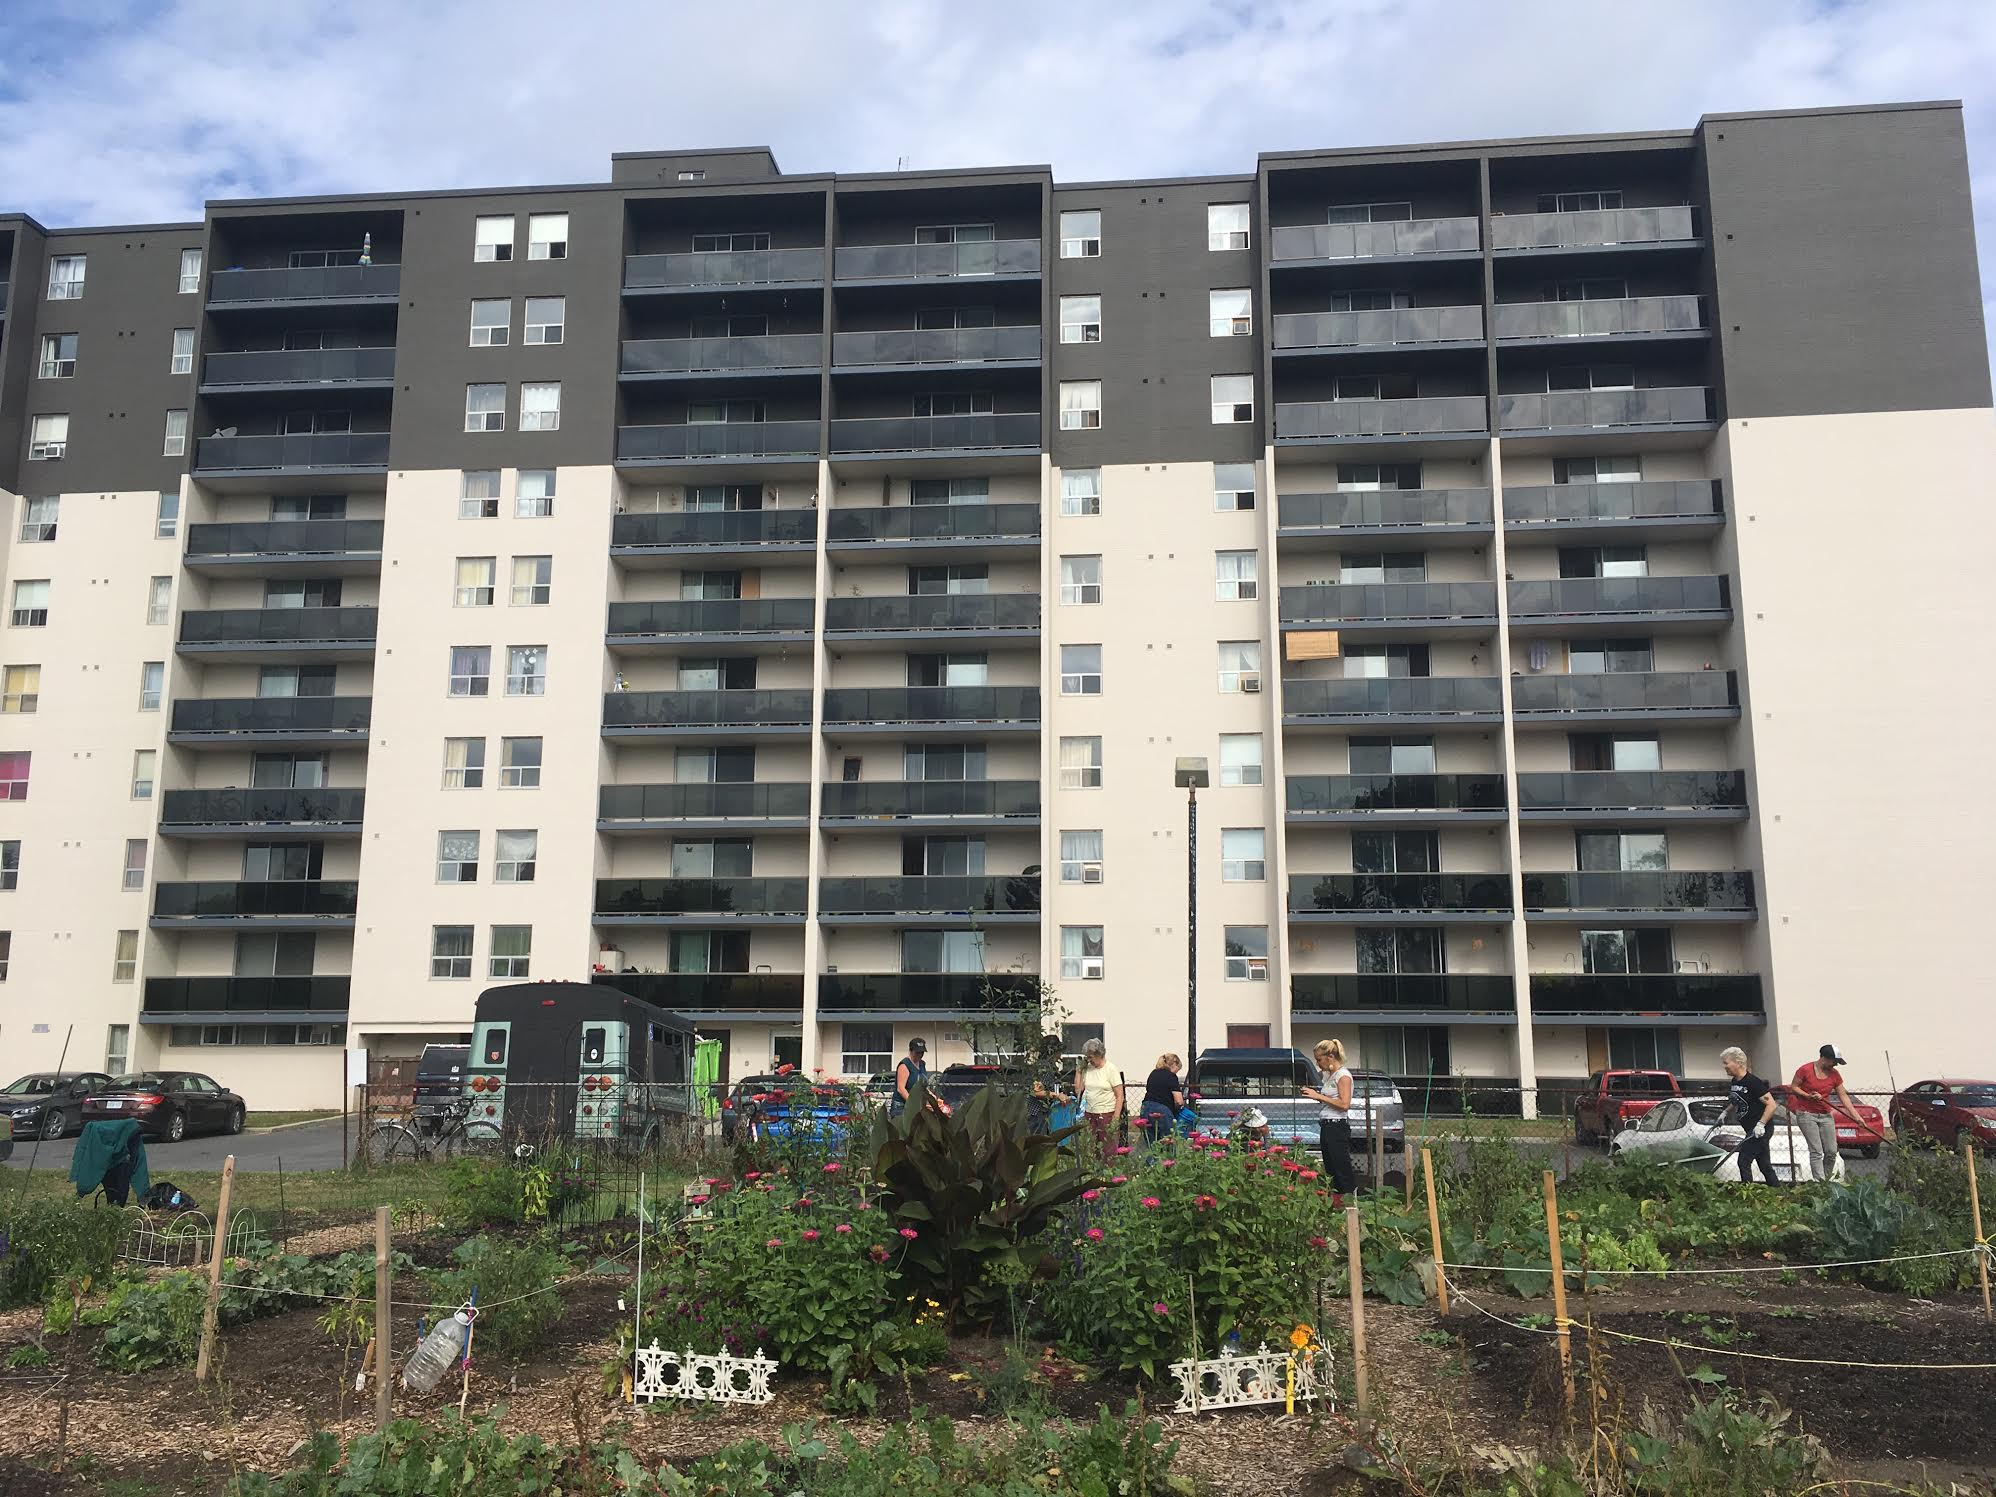 Talwood Apartment Building and Community Garden in Peterborough